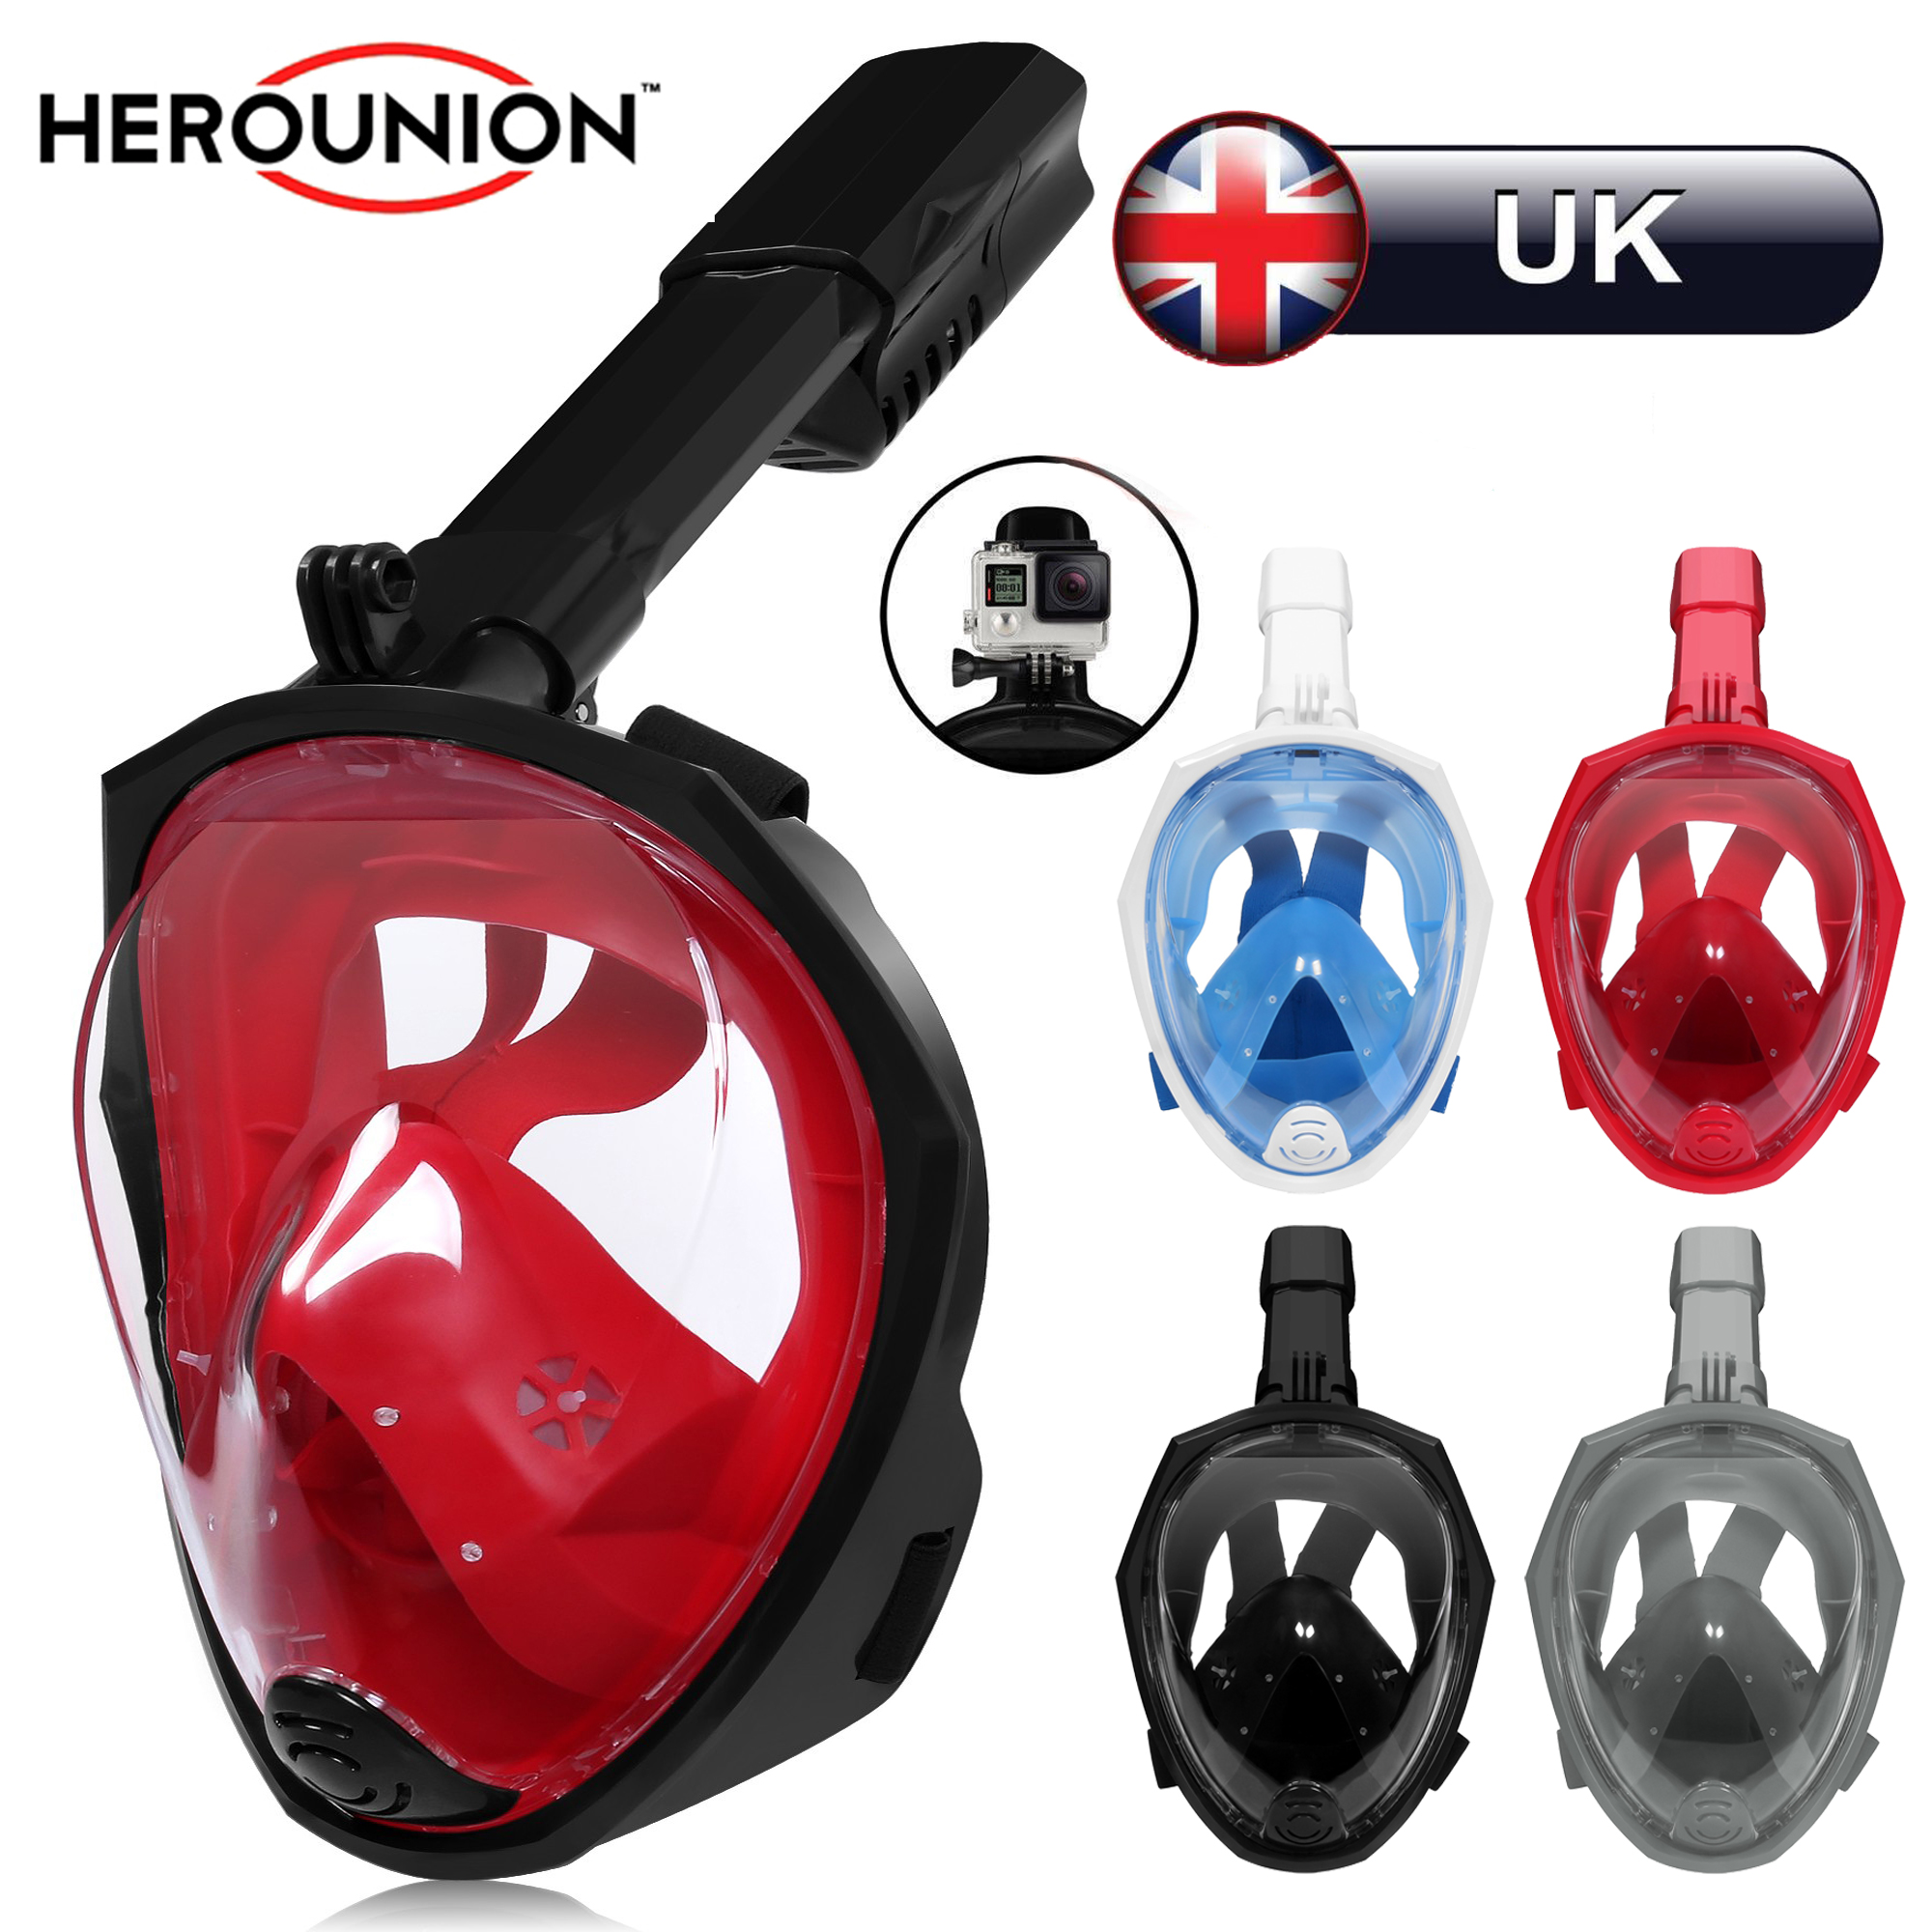 fbd9a63d2 Details about UK Full Face Snorkeling Mask Watersport Scuba Swimming Diving  Mask UK STOCK